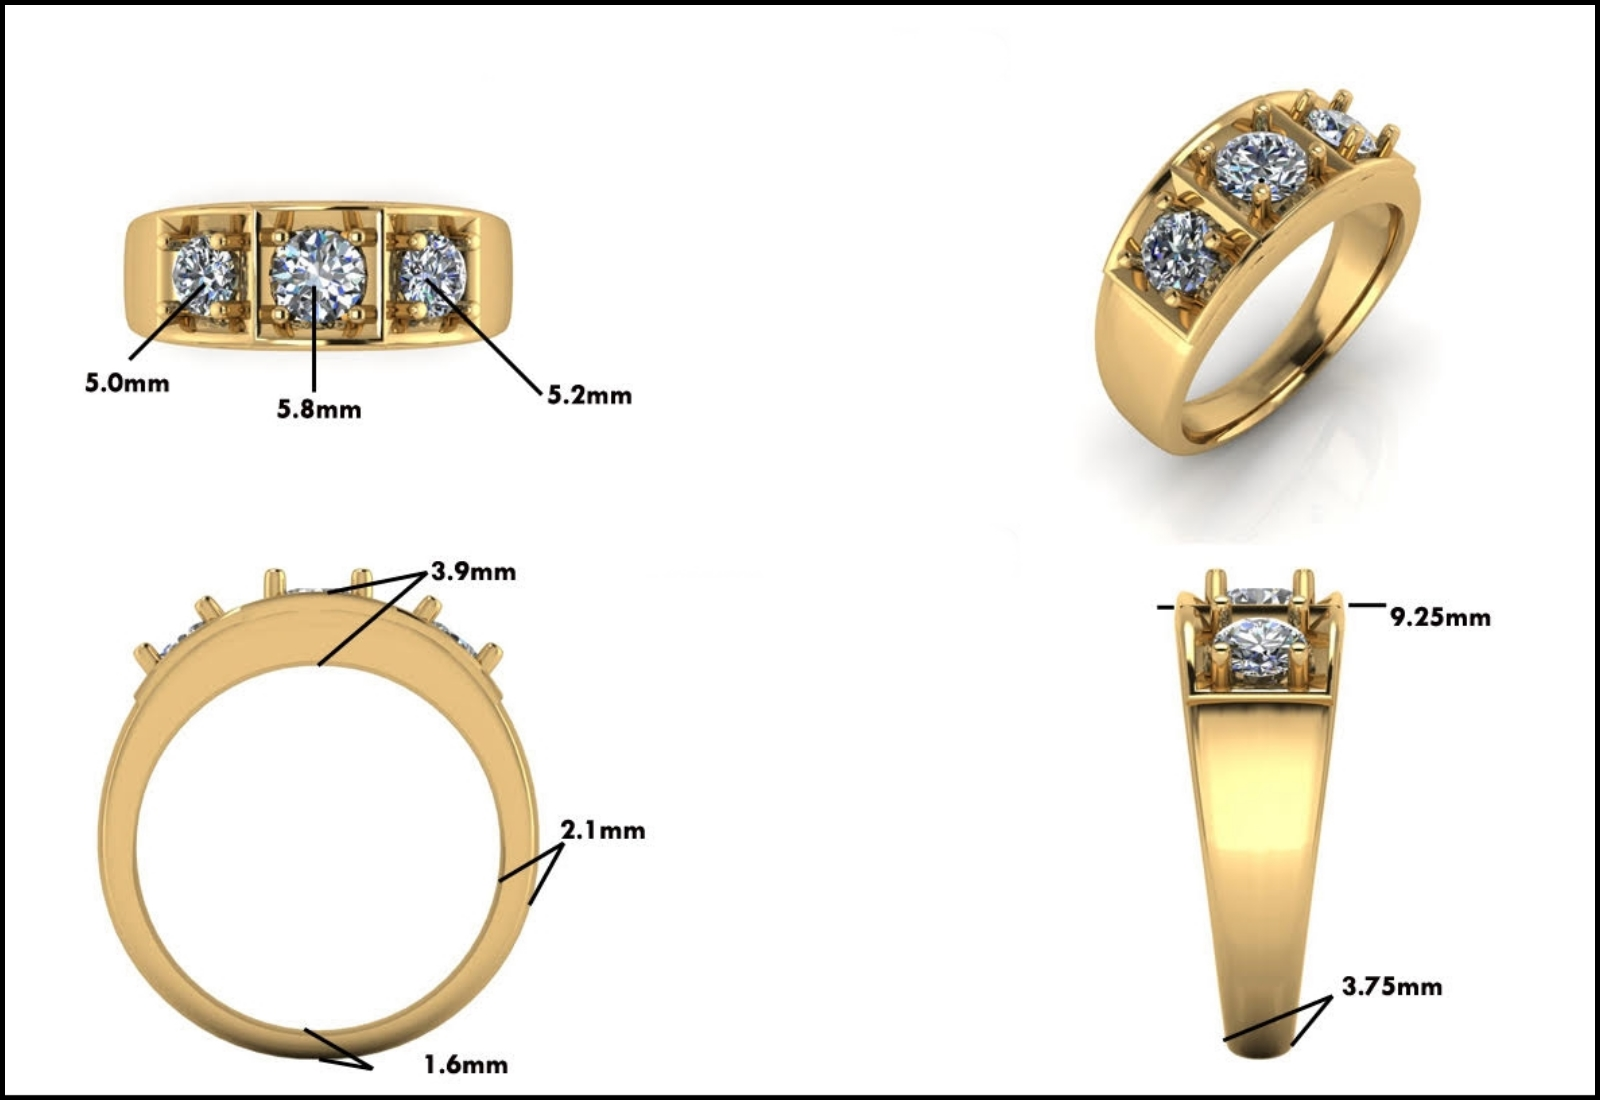 Custom Jewelry Design - Mitchum Jewelers - Image 22